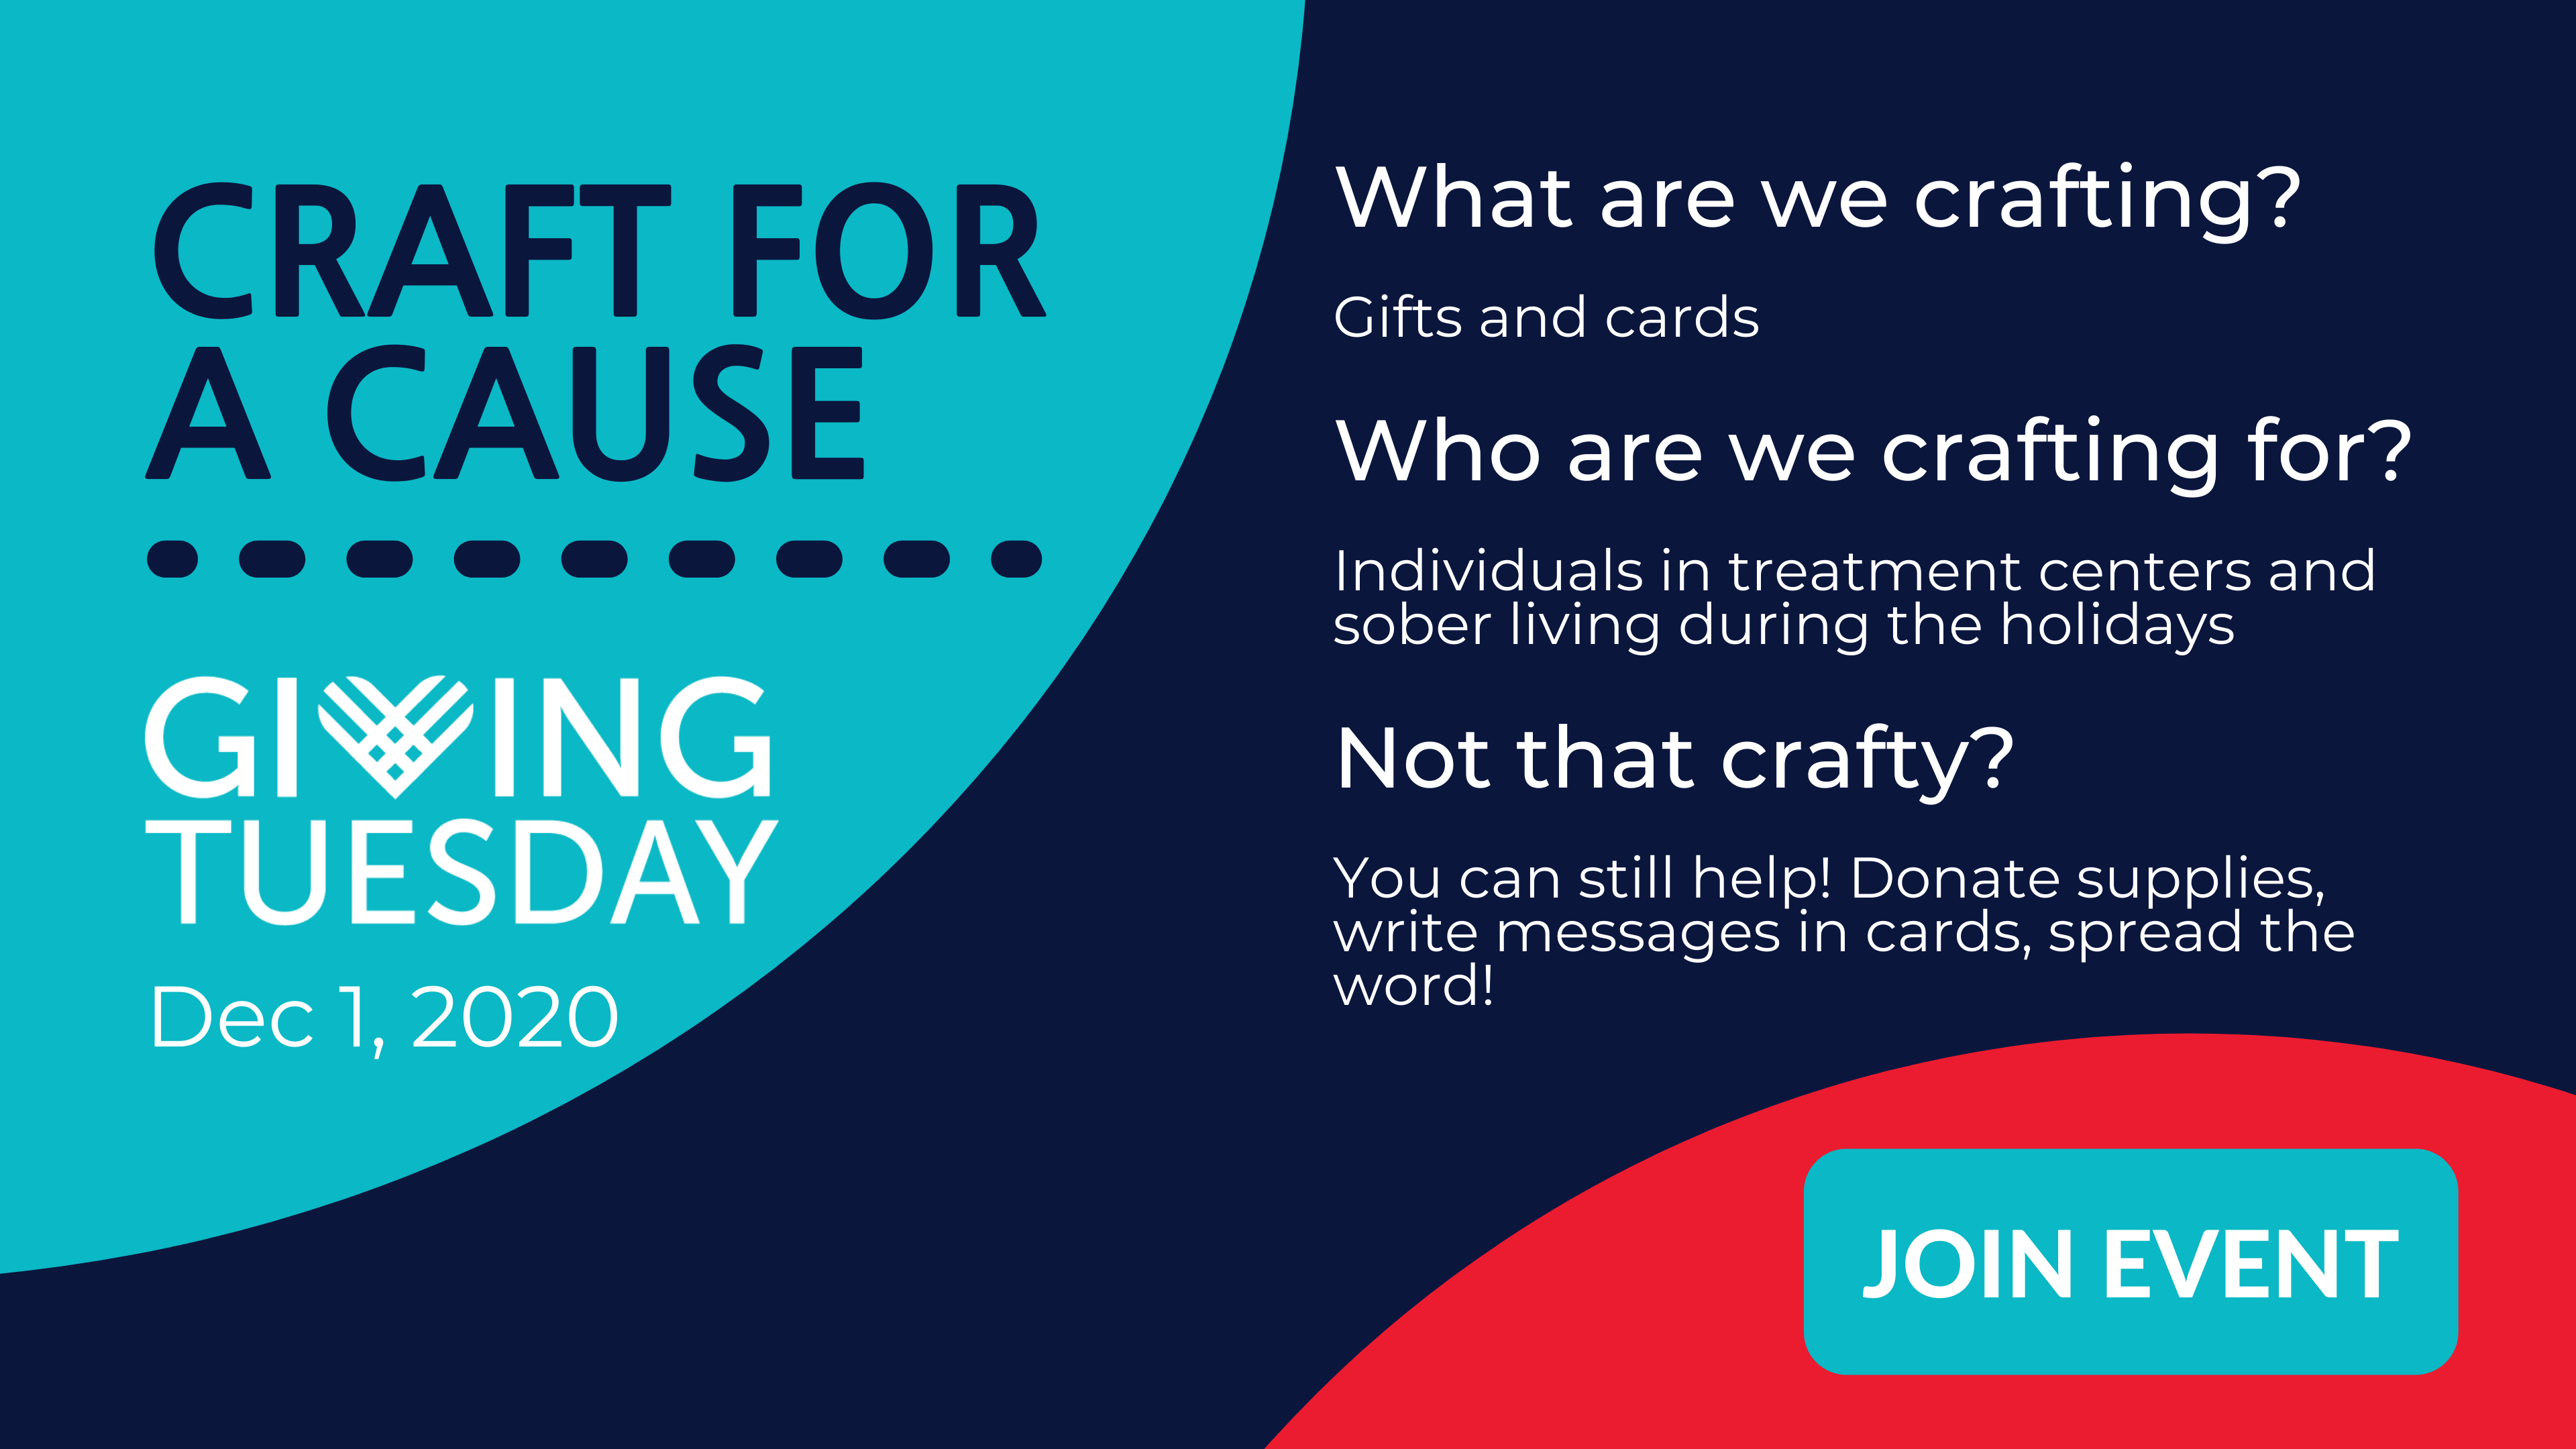 Craft for a cause giving tuesdat at ARCNH